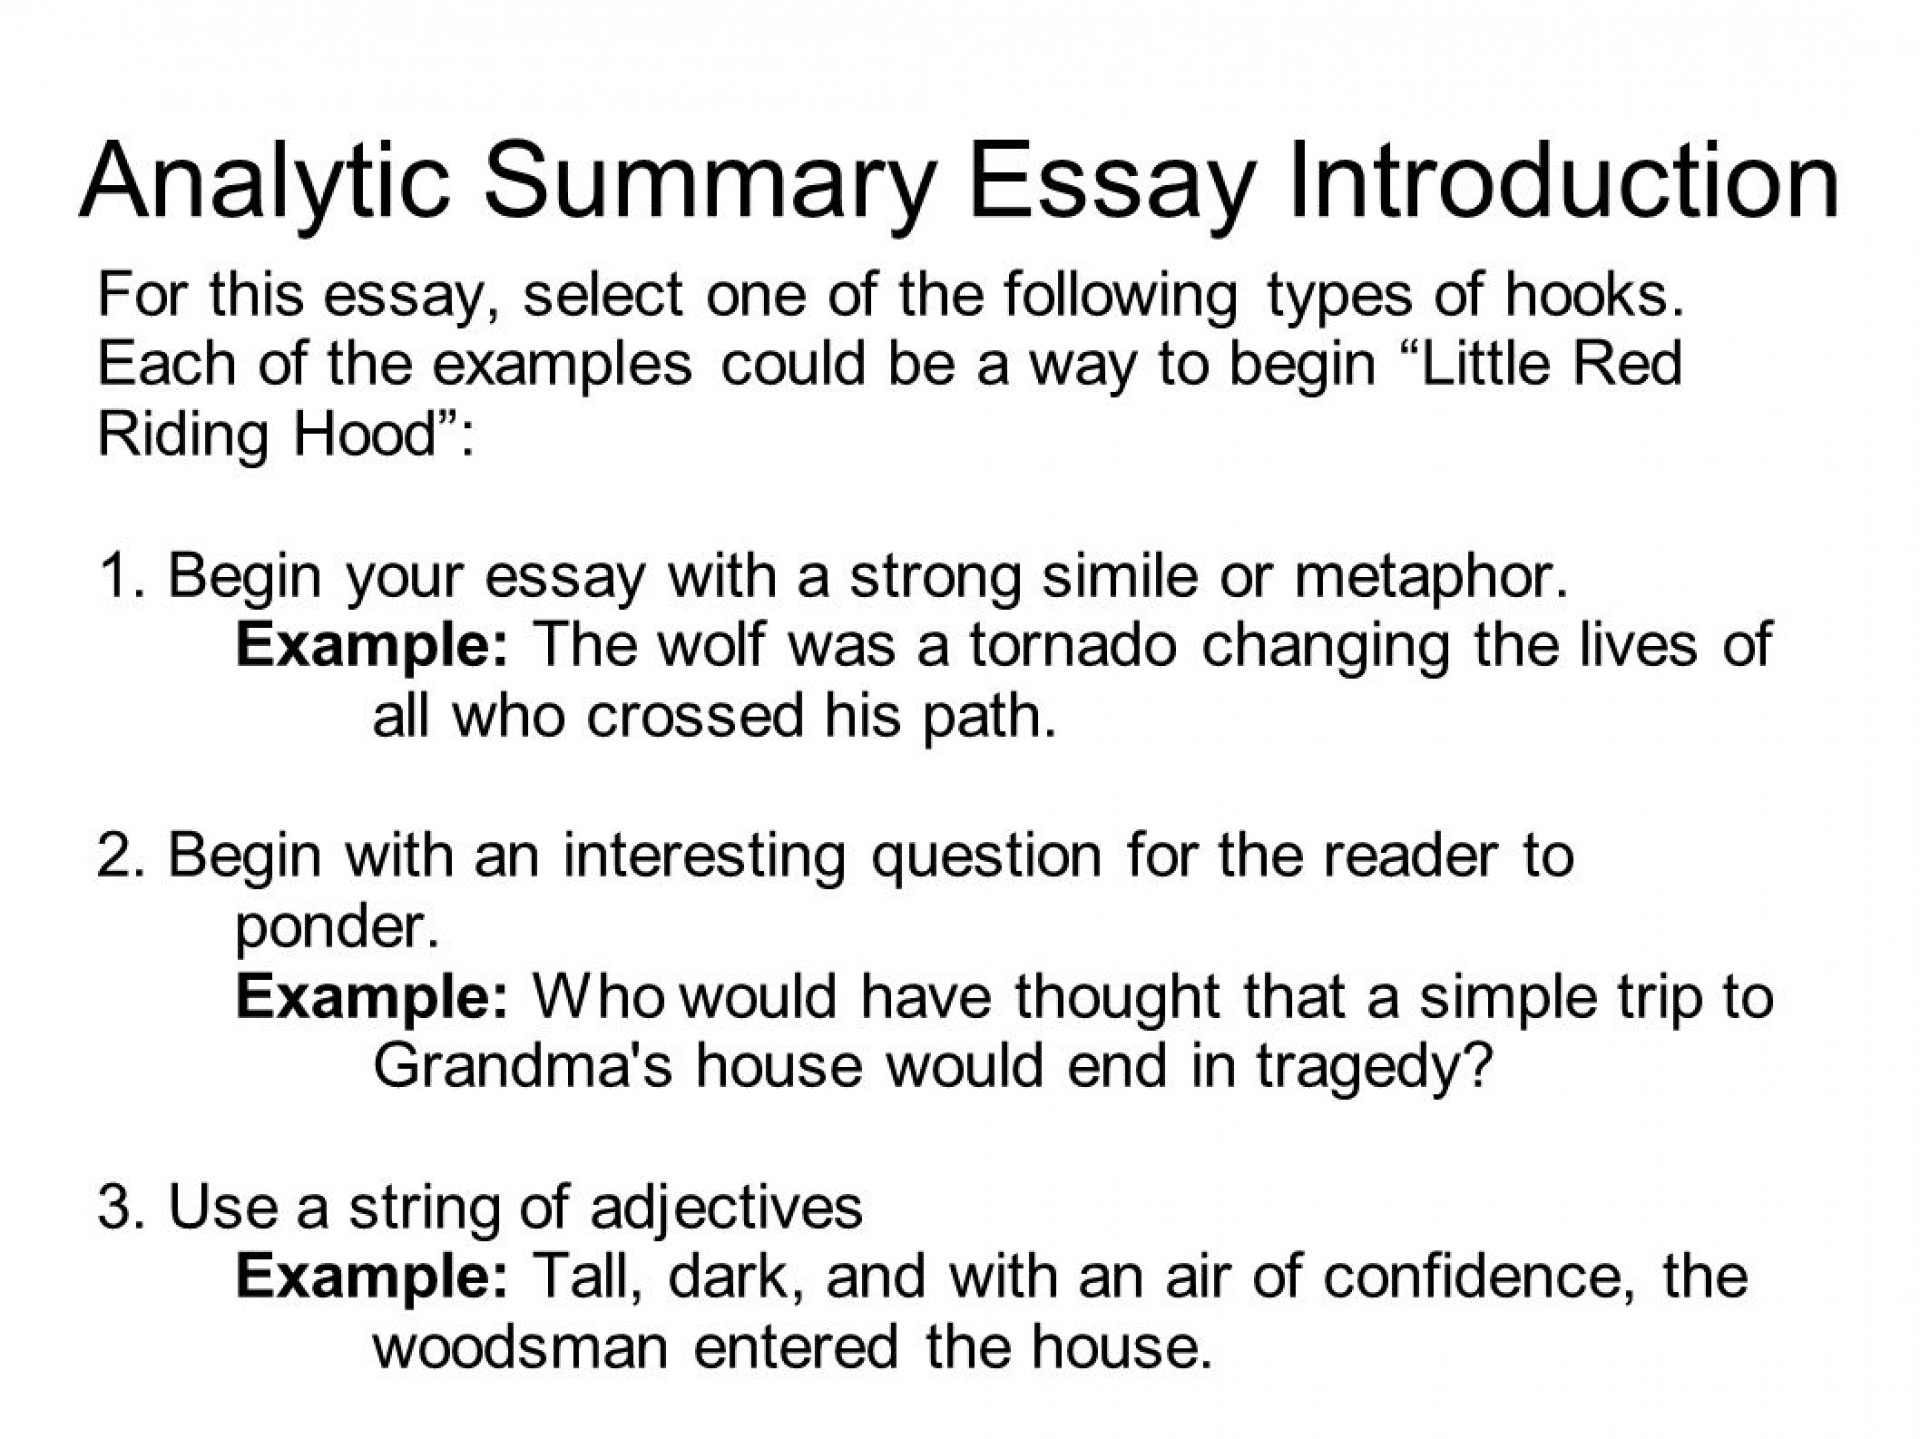 006 Examples Of Hooks For Essays Co Essay Example Sli Expository Comparison Writing Narrative Argumentative Types High School Hook Striking An About Depression How To Write A Yourself 1920